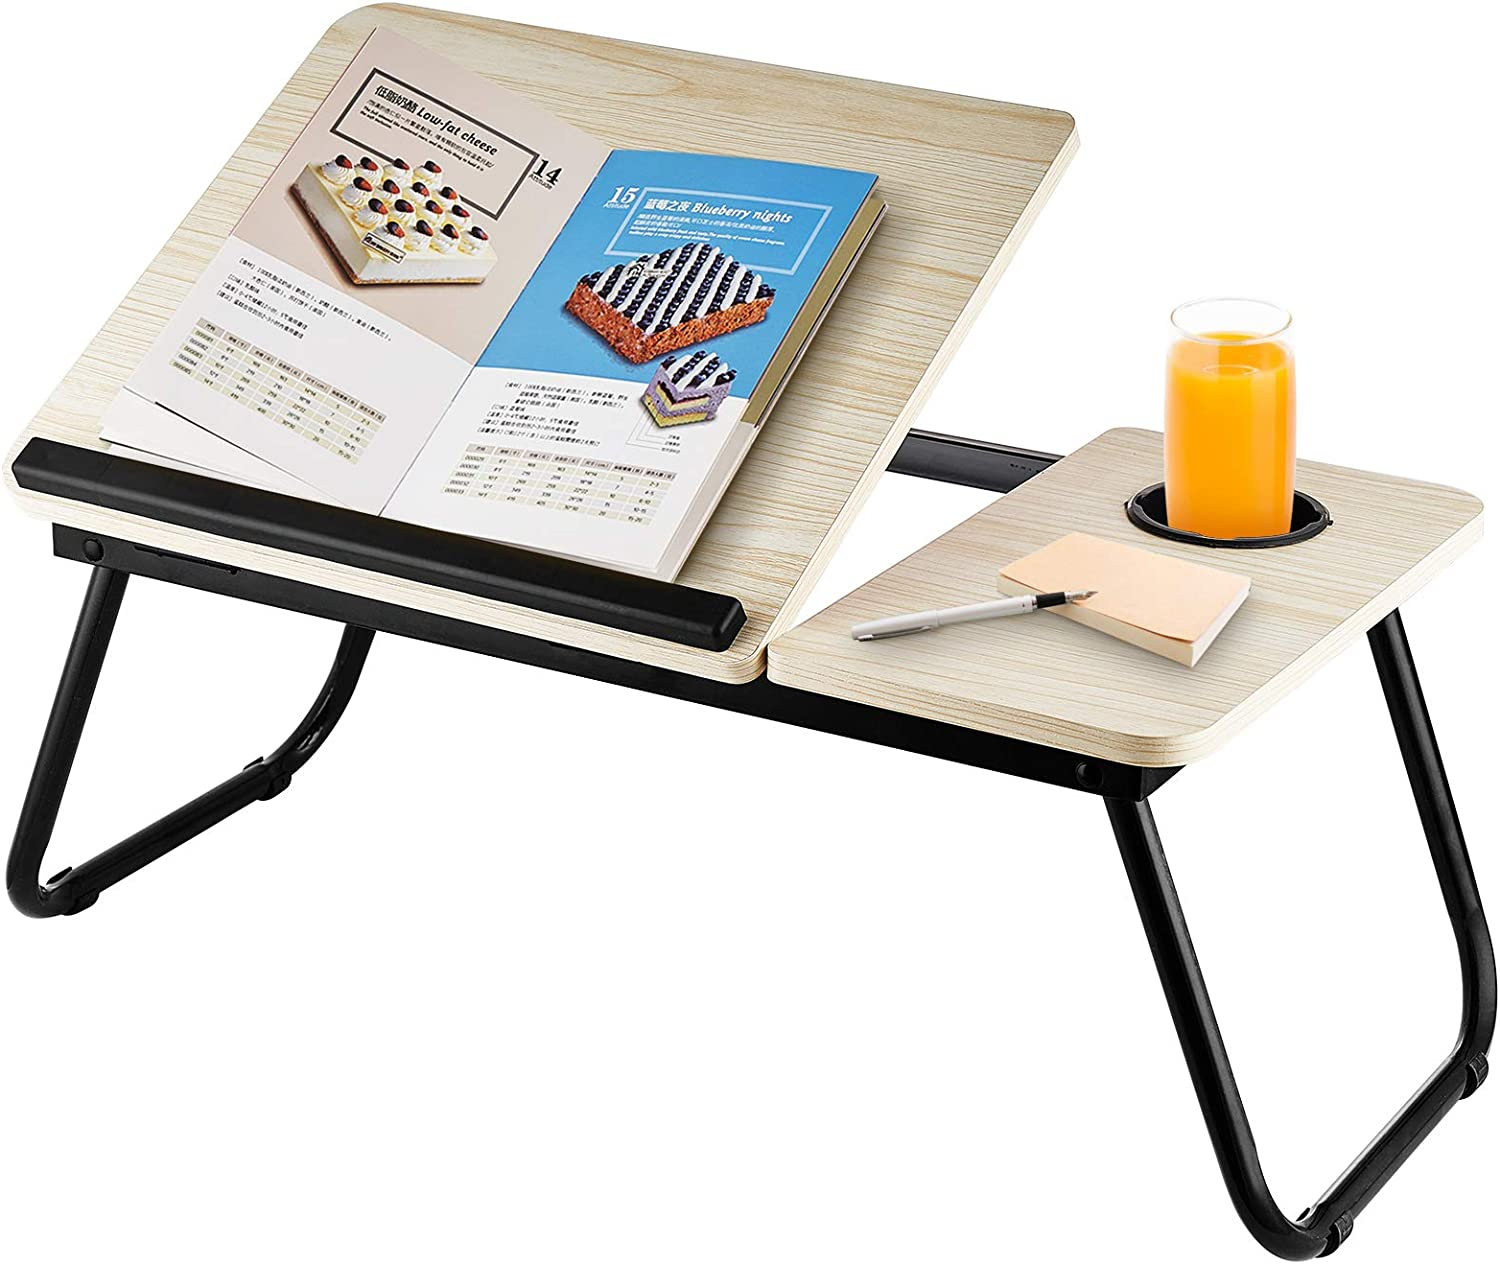 AllesCosy Laptop Stand Lap Desk Bed Tray Table Foldable Lap Desk with Adjustable Top Stand Tablet/Cup Holders Ultra Portable Prefect for PC Working Breakfast Reading Book Watching Movie at Home White